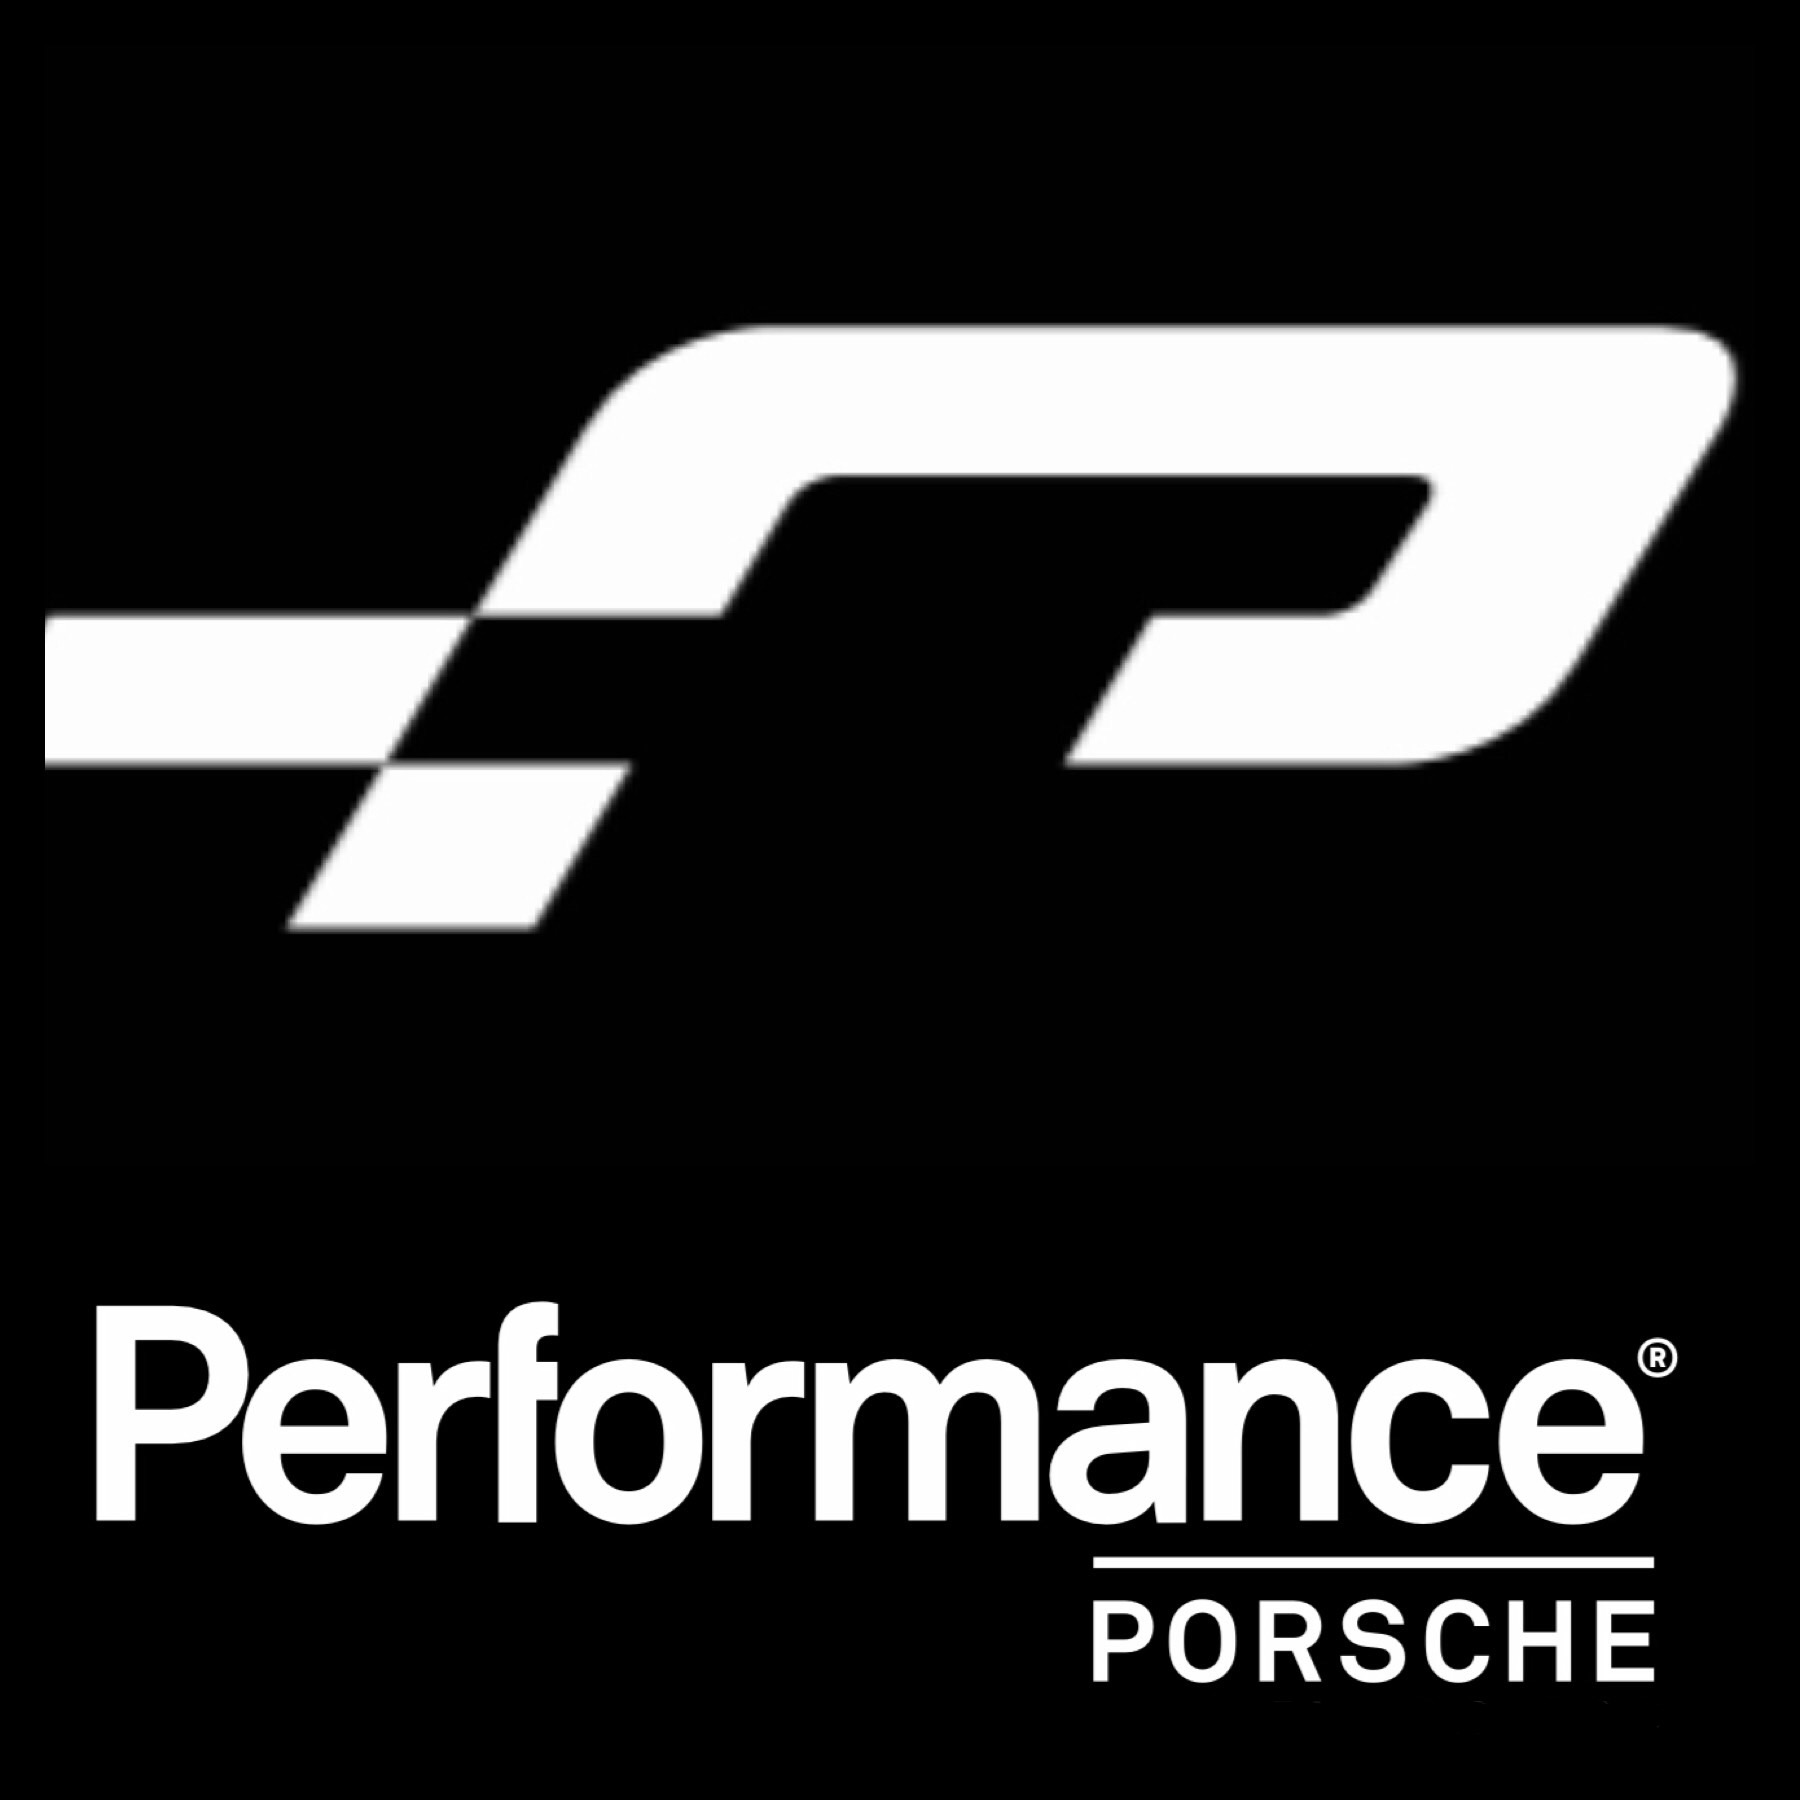 Work Started On Our New Performance Porsche Website